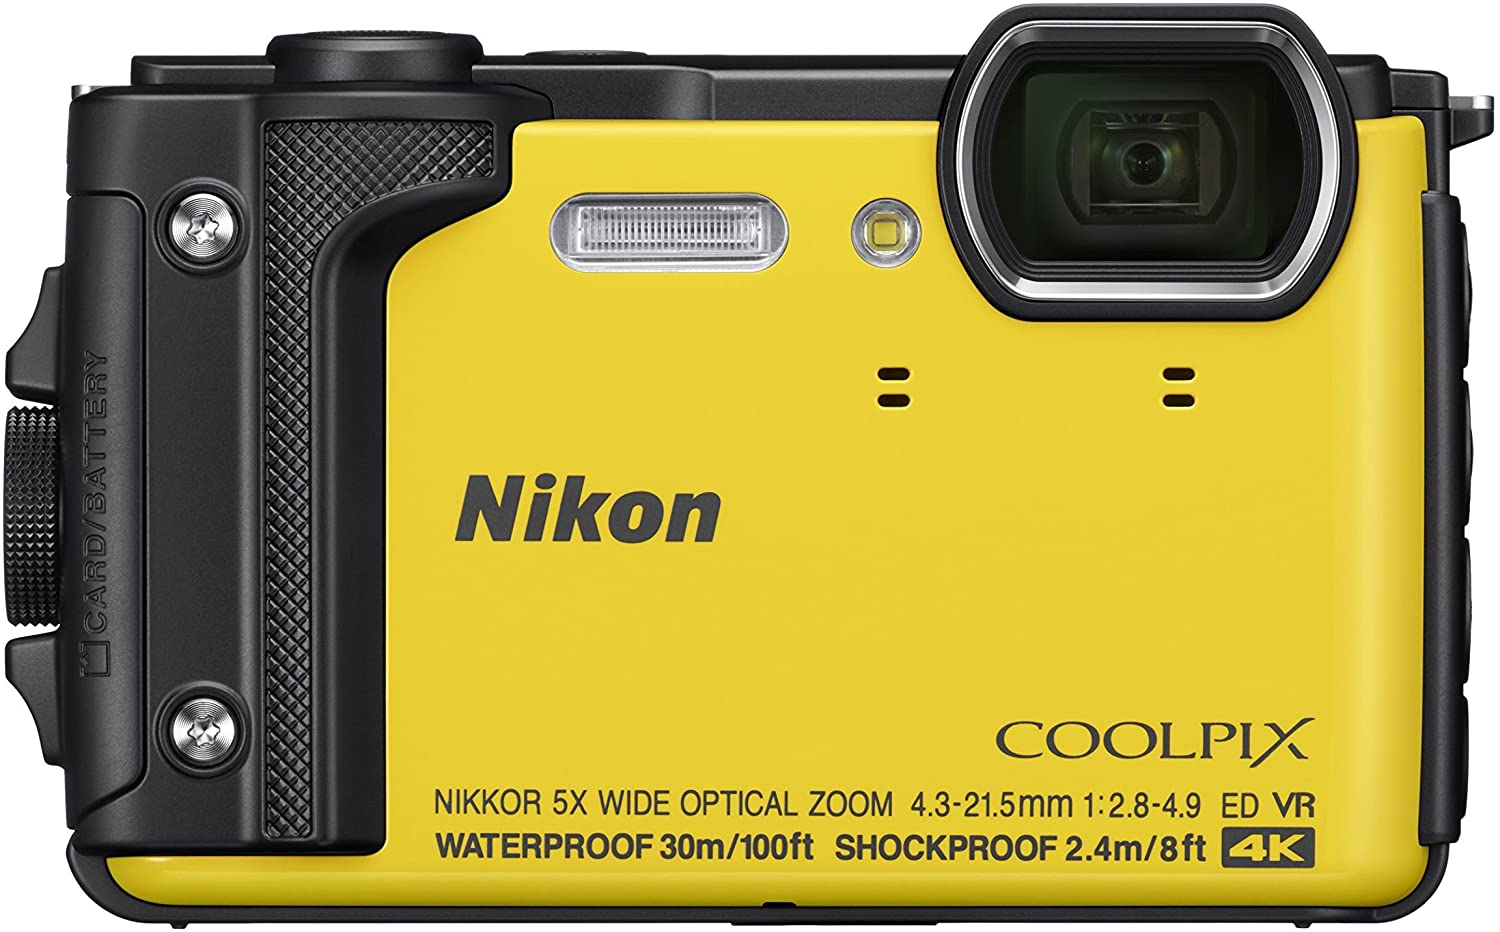 Nikon W300 Coolpix Camera Black Friday Deal 2020